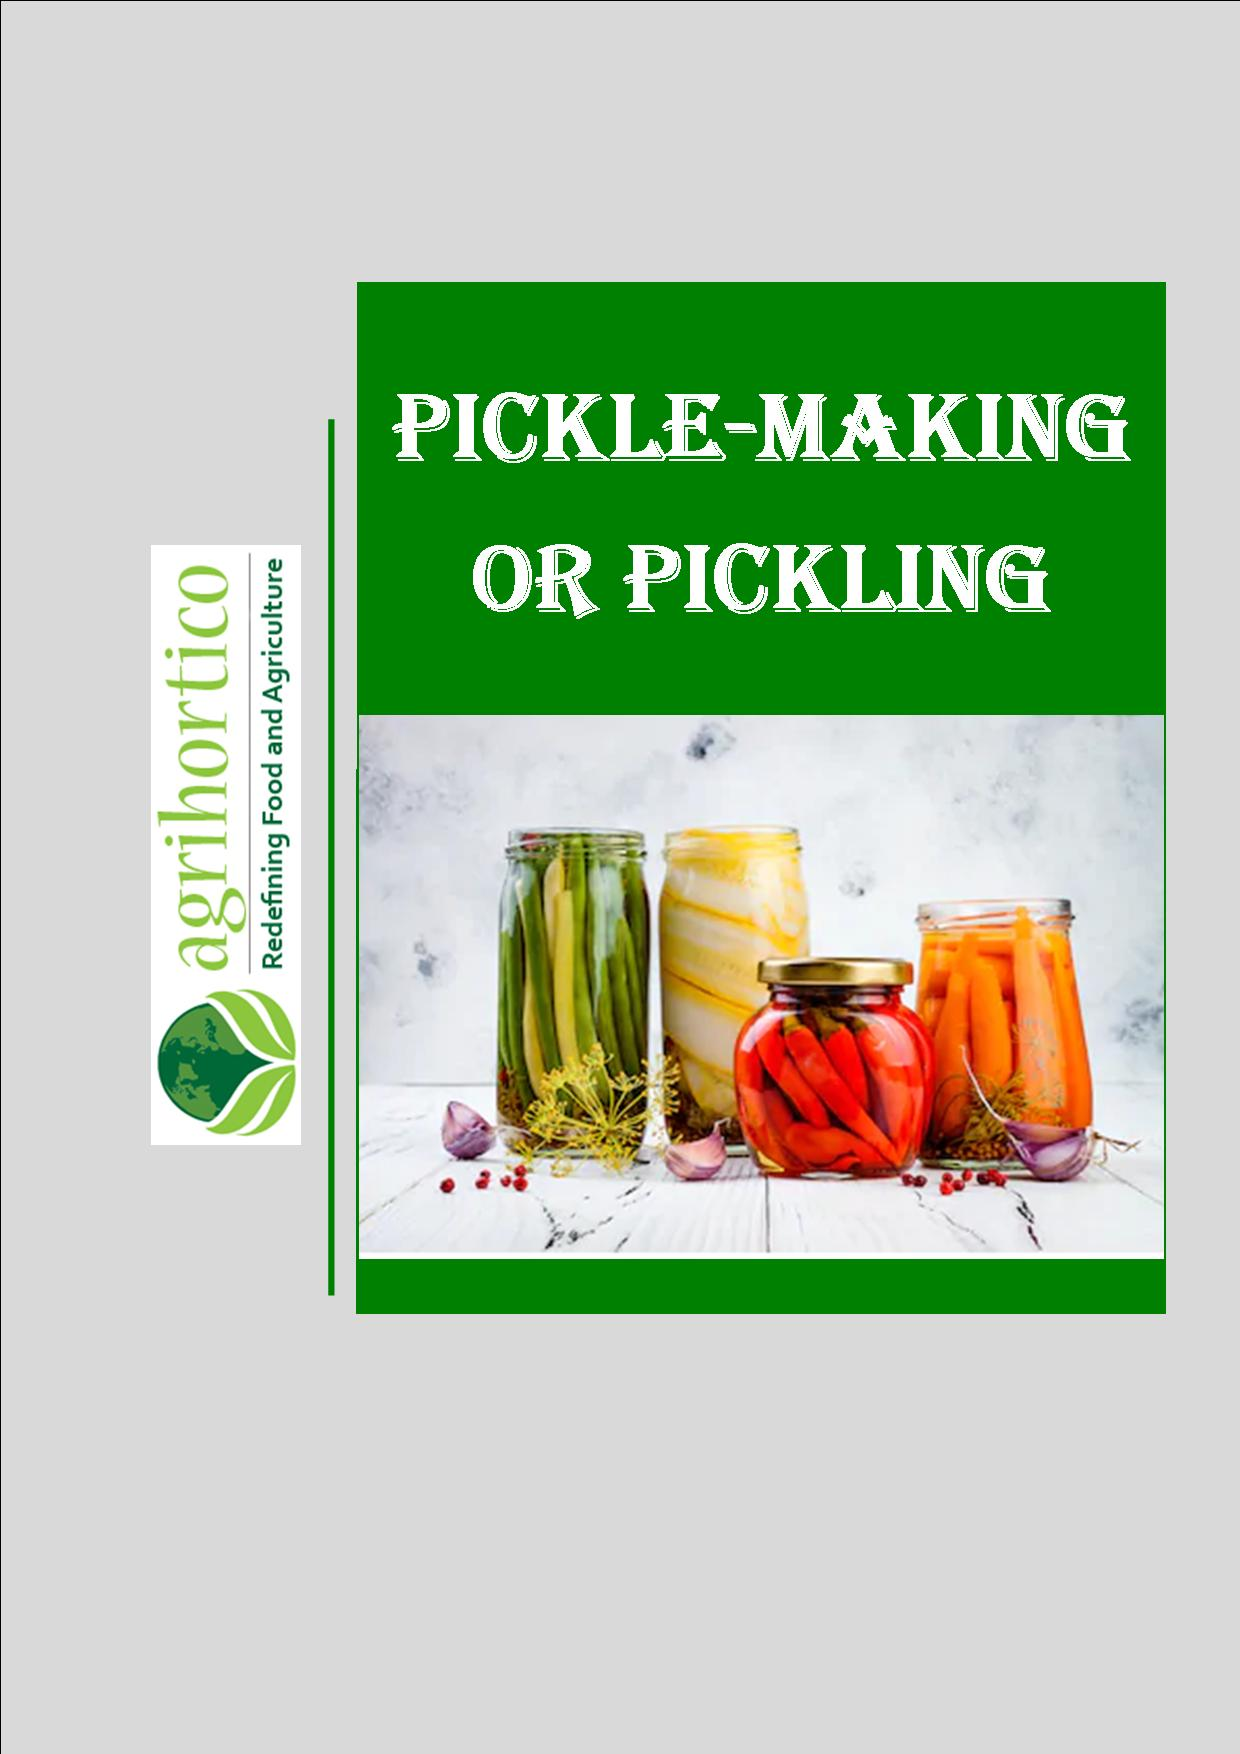 pickle-making